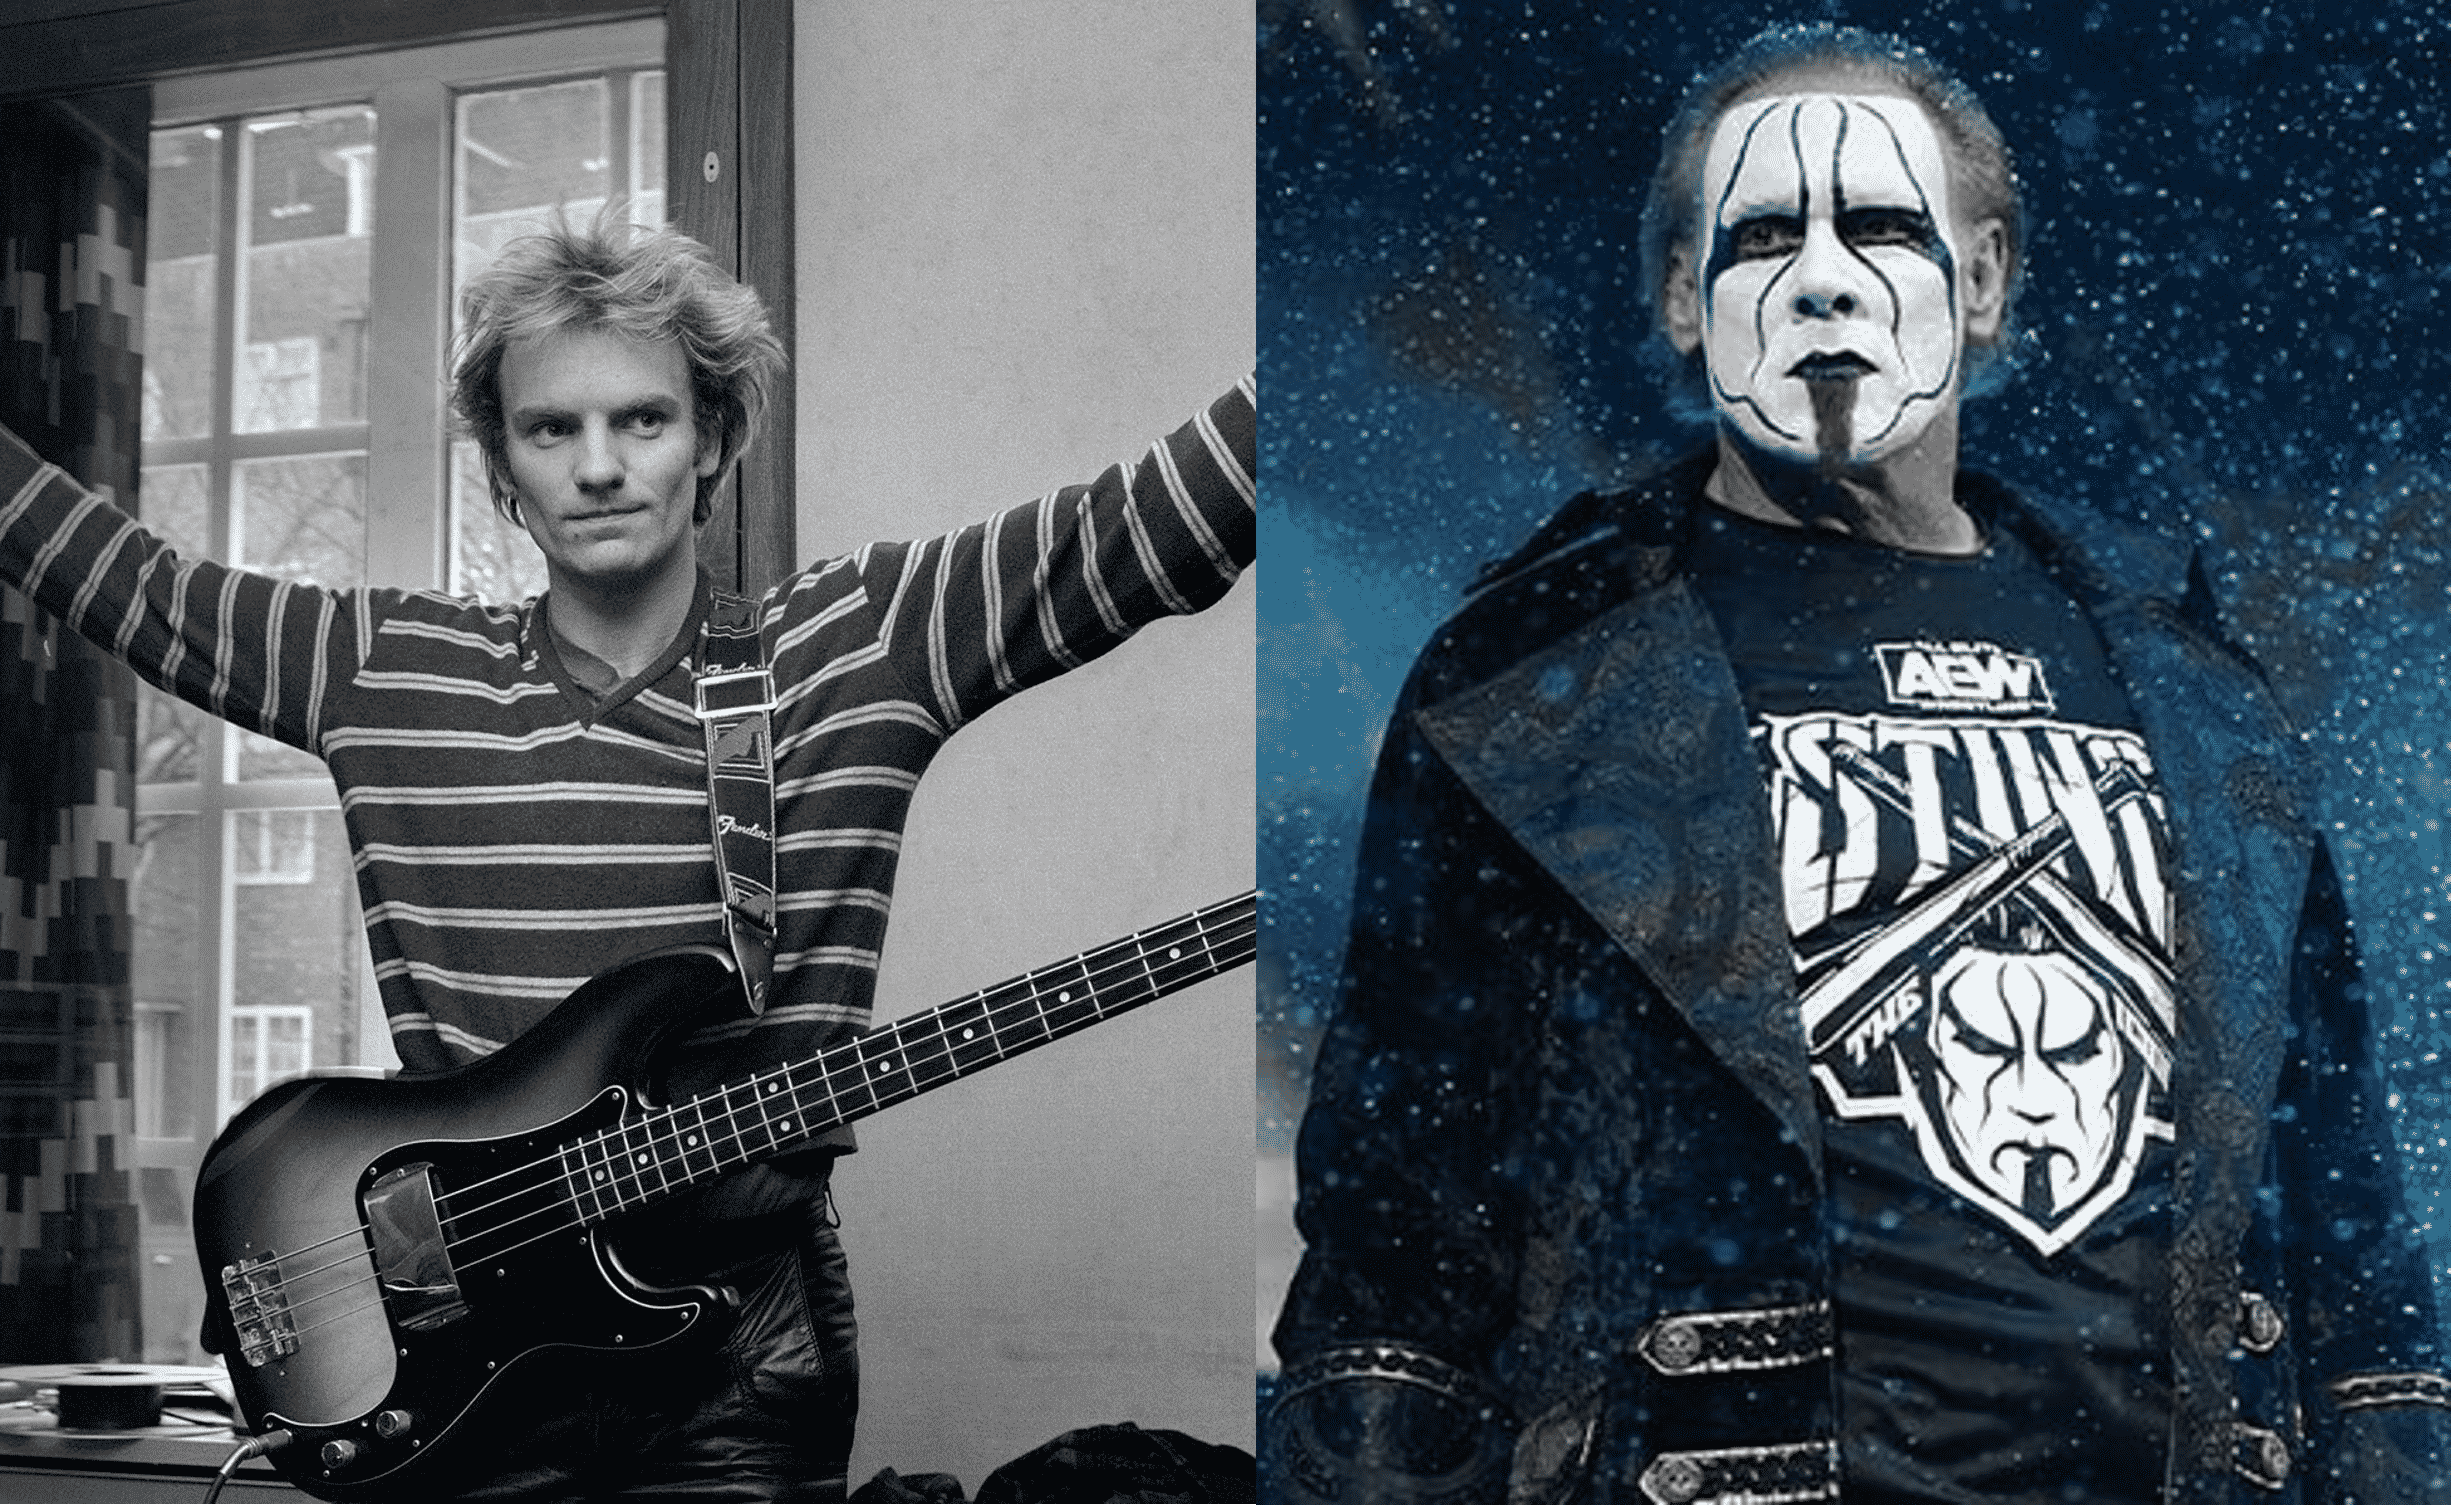 Sting the musician and Sting the wrestler